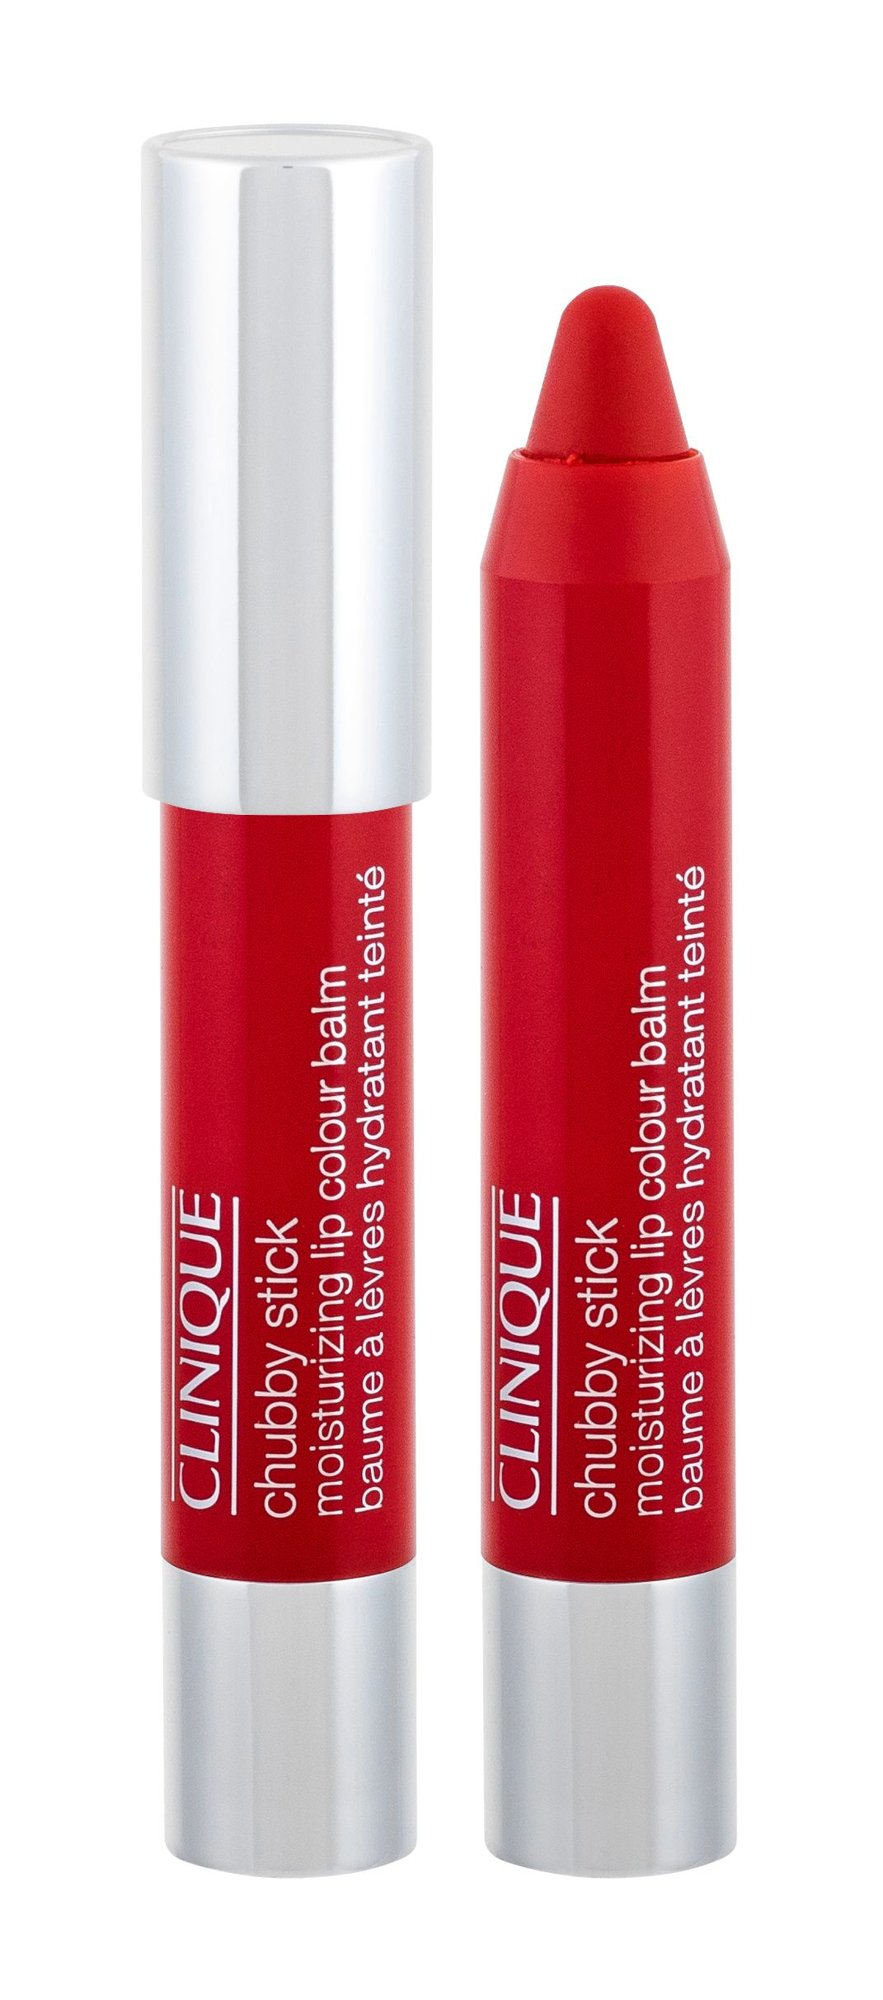 Clinique Chubby Stick Cosmetic 3ml 11 Two Ton Tomato